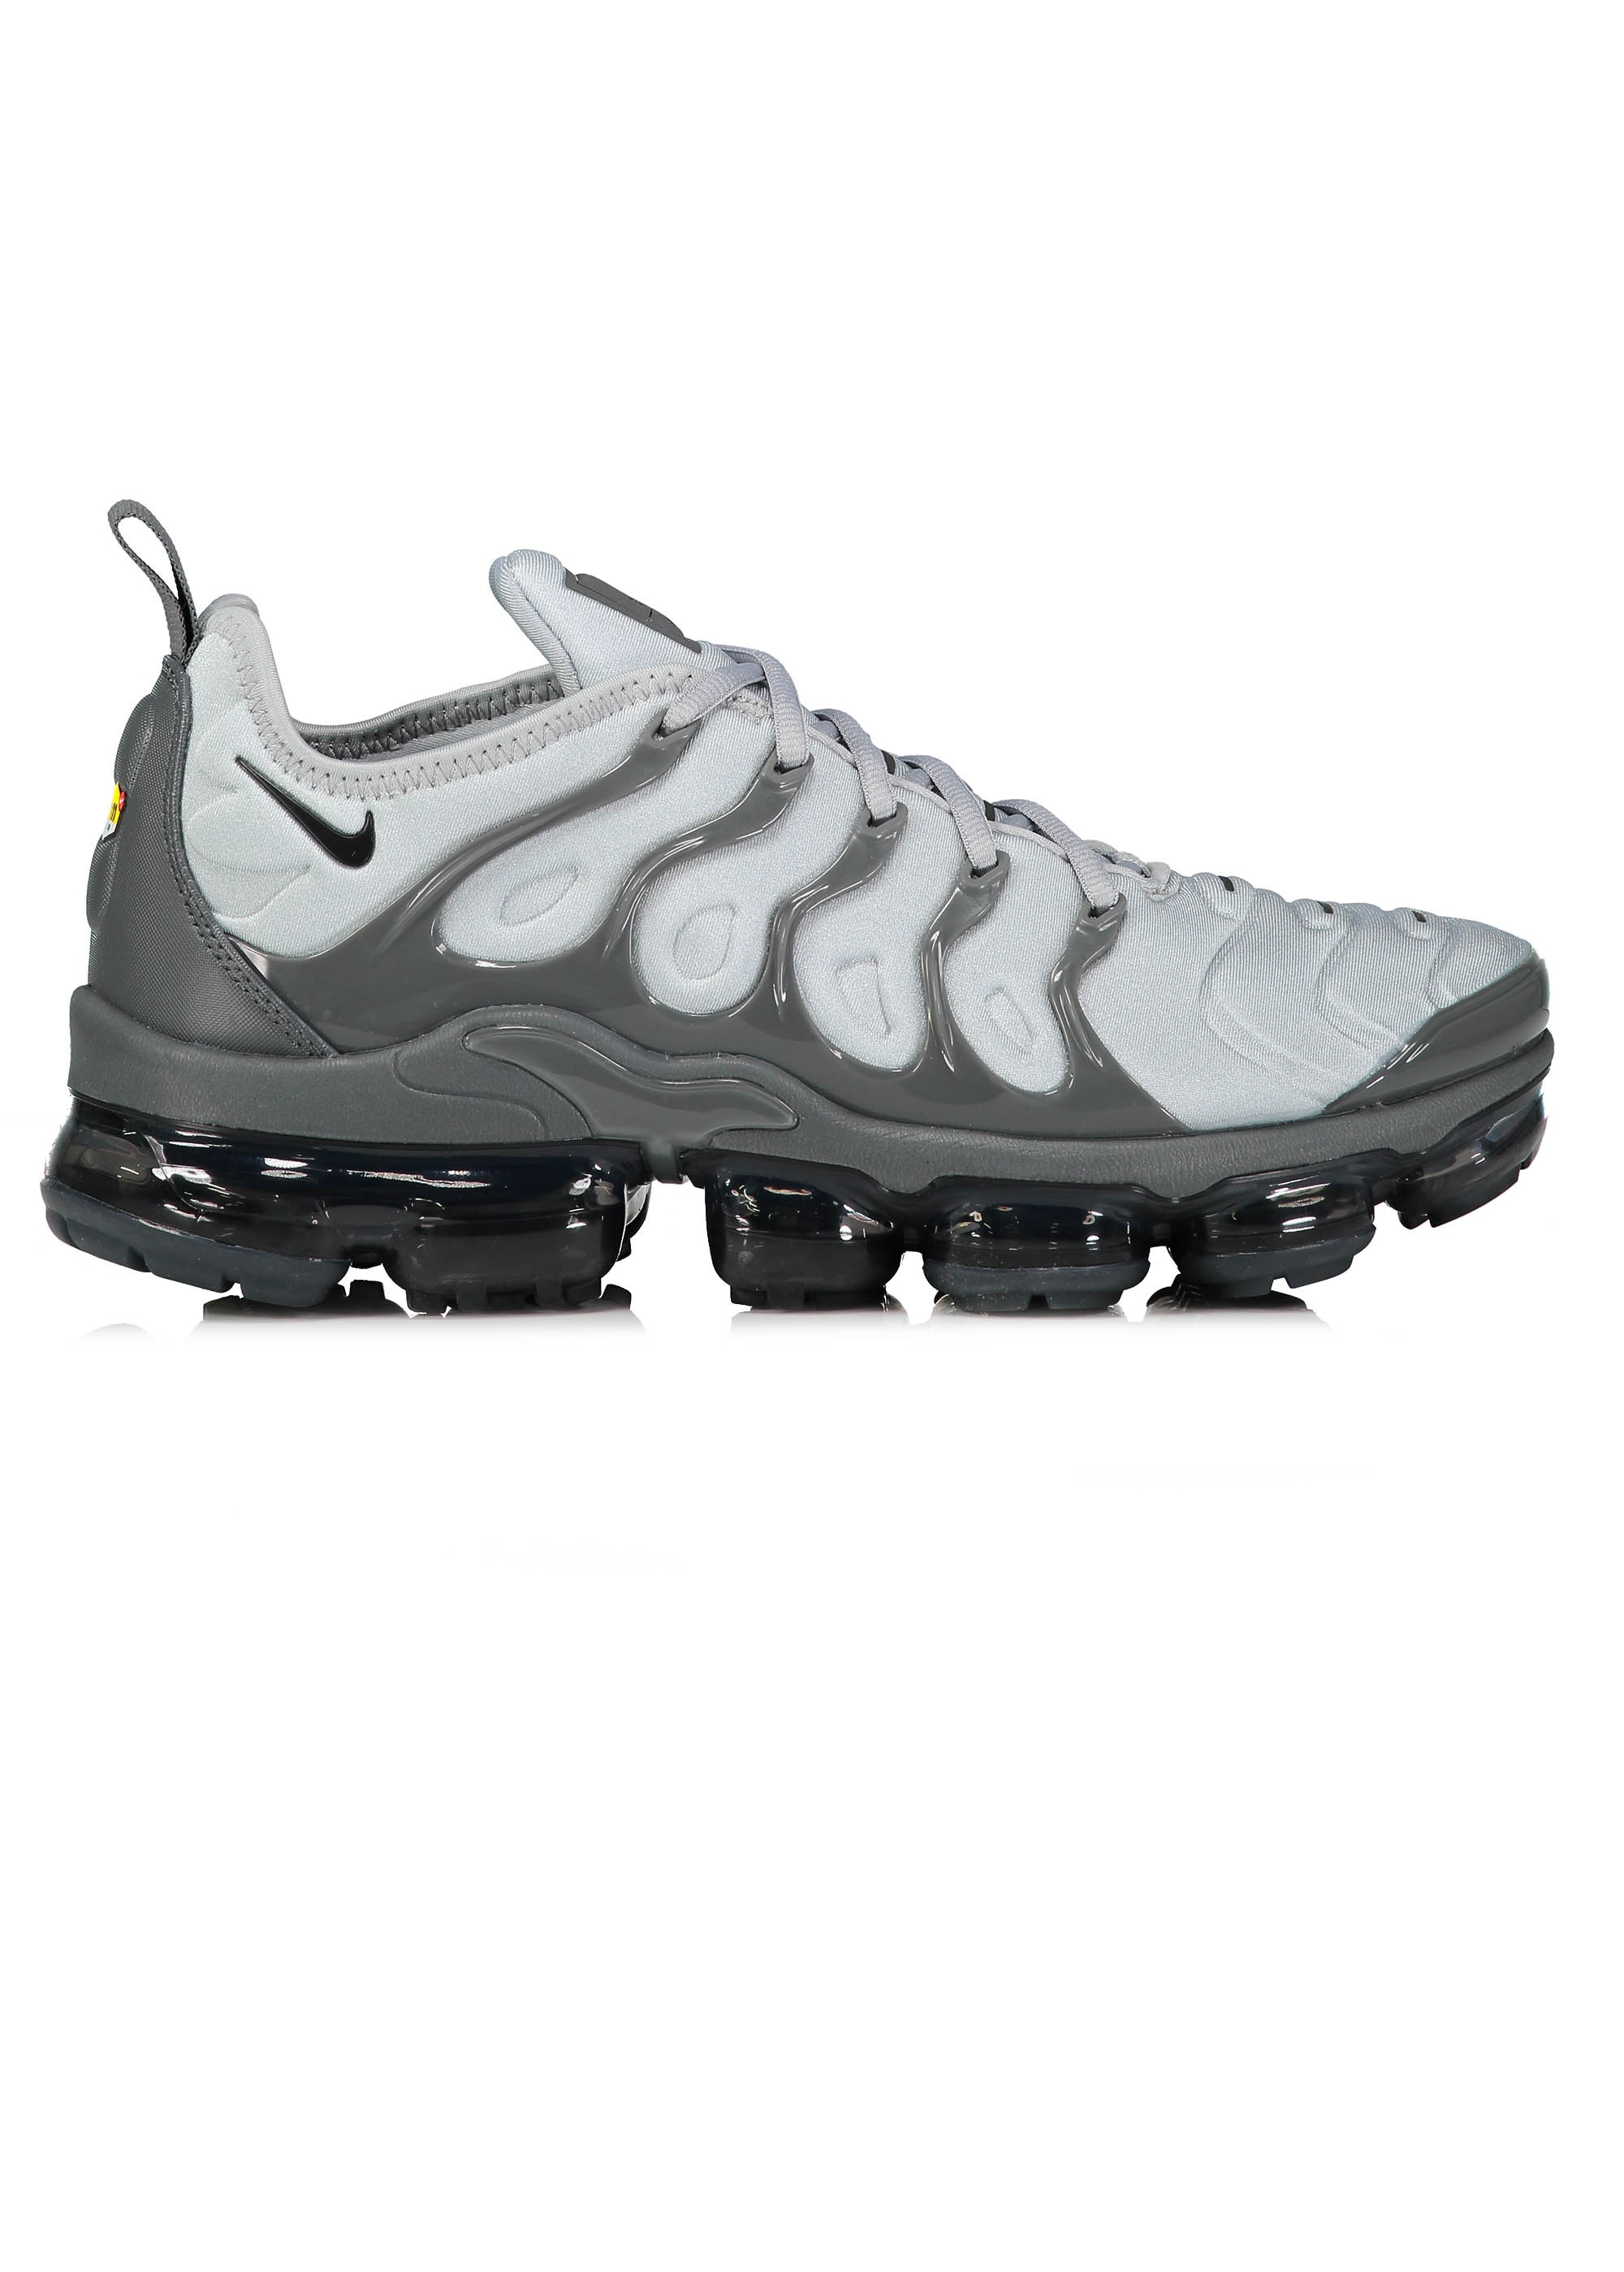 86fe4cad7d Nike Air VaporMax Plus - Wolf Grey - Triads Mens from Triads UK